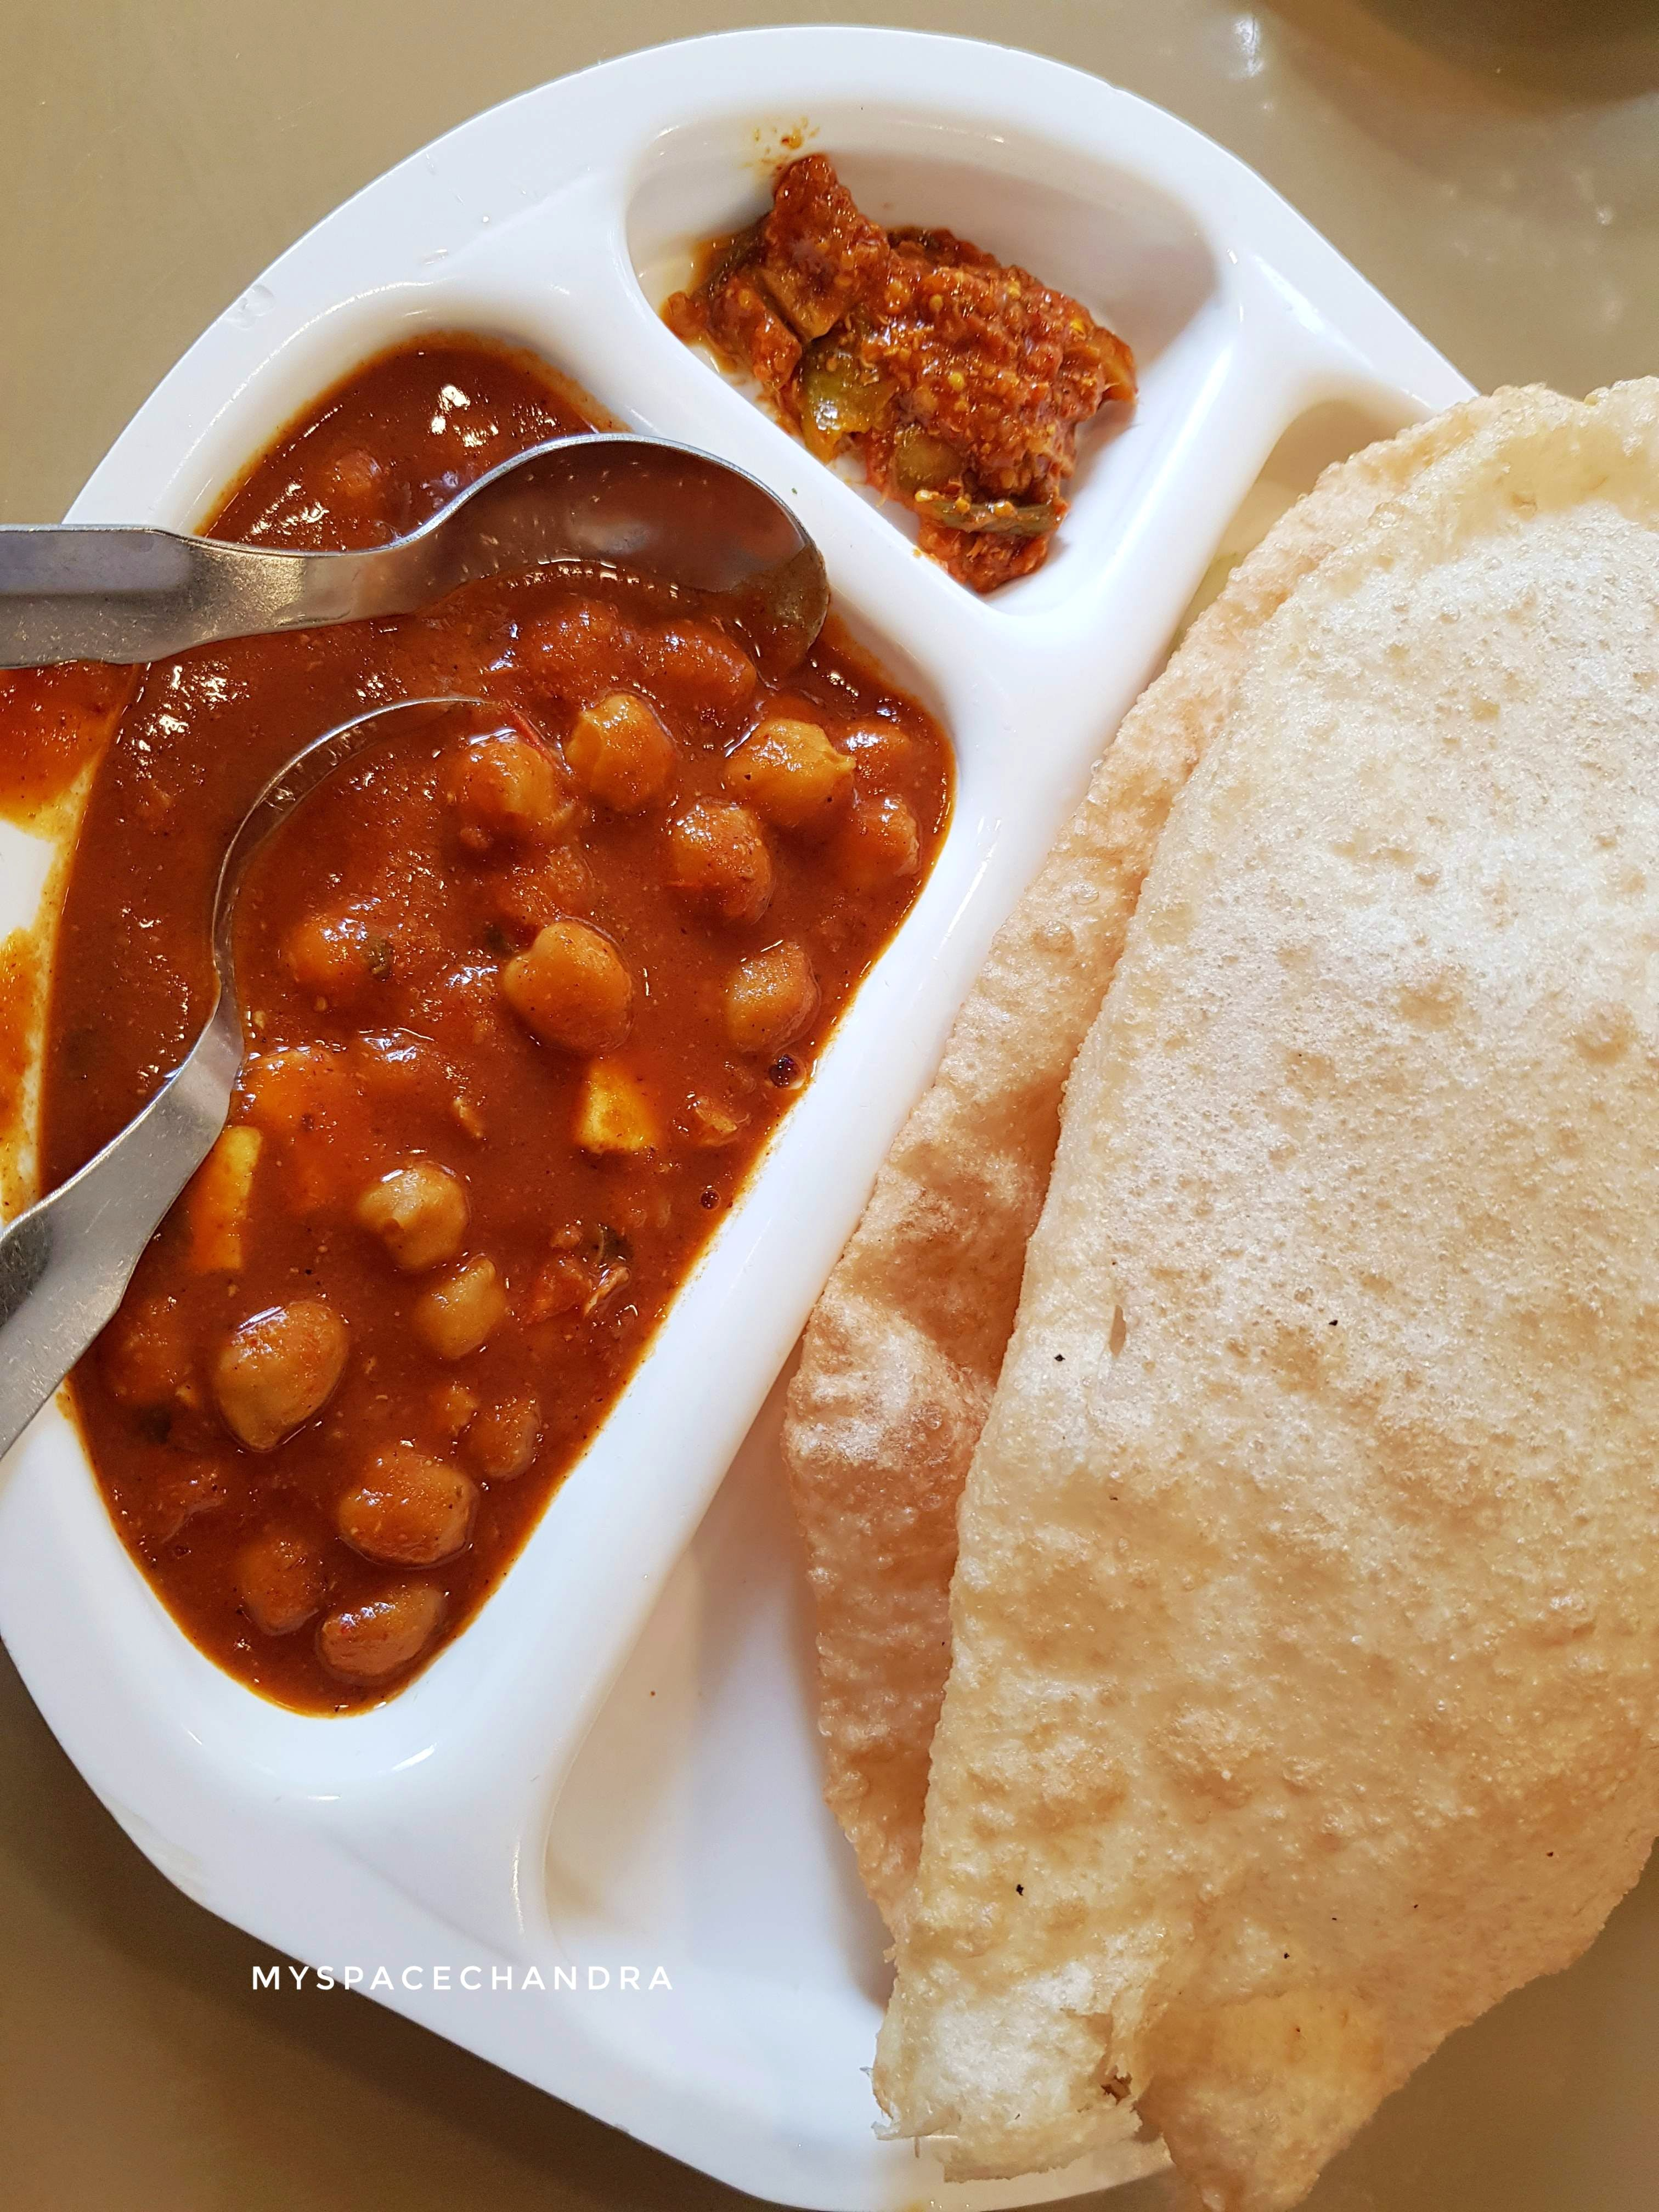 Dish,Food,Cuisine,Ingredient,Curry,Baked beans,Produce,Roti,Chapati,Chili con carne